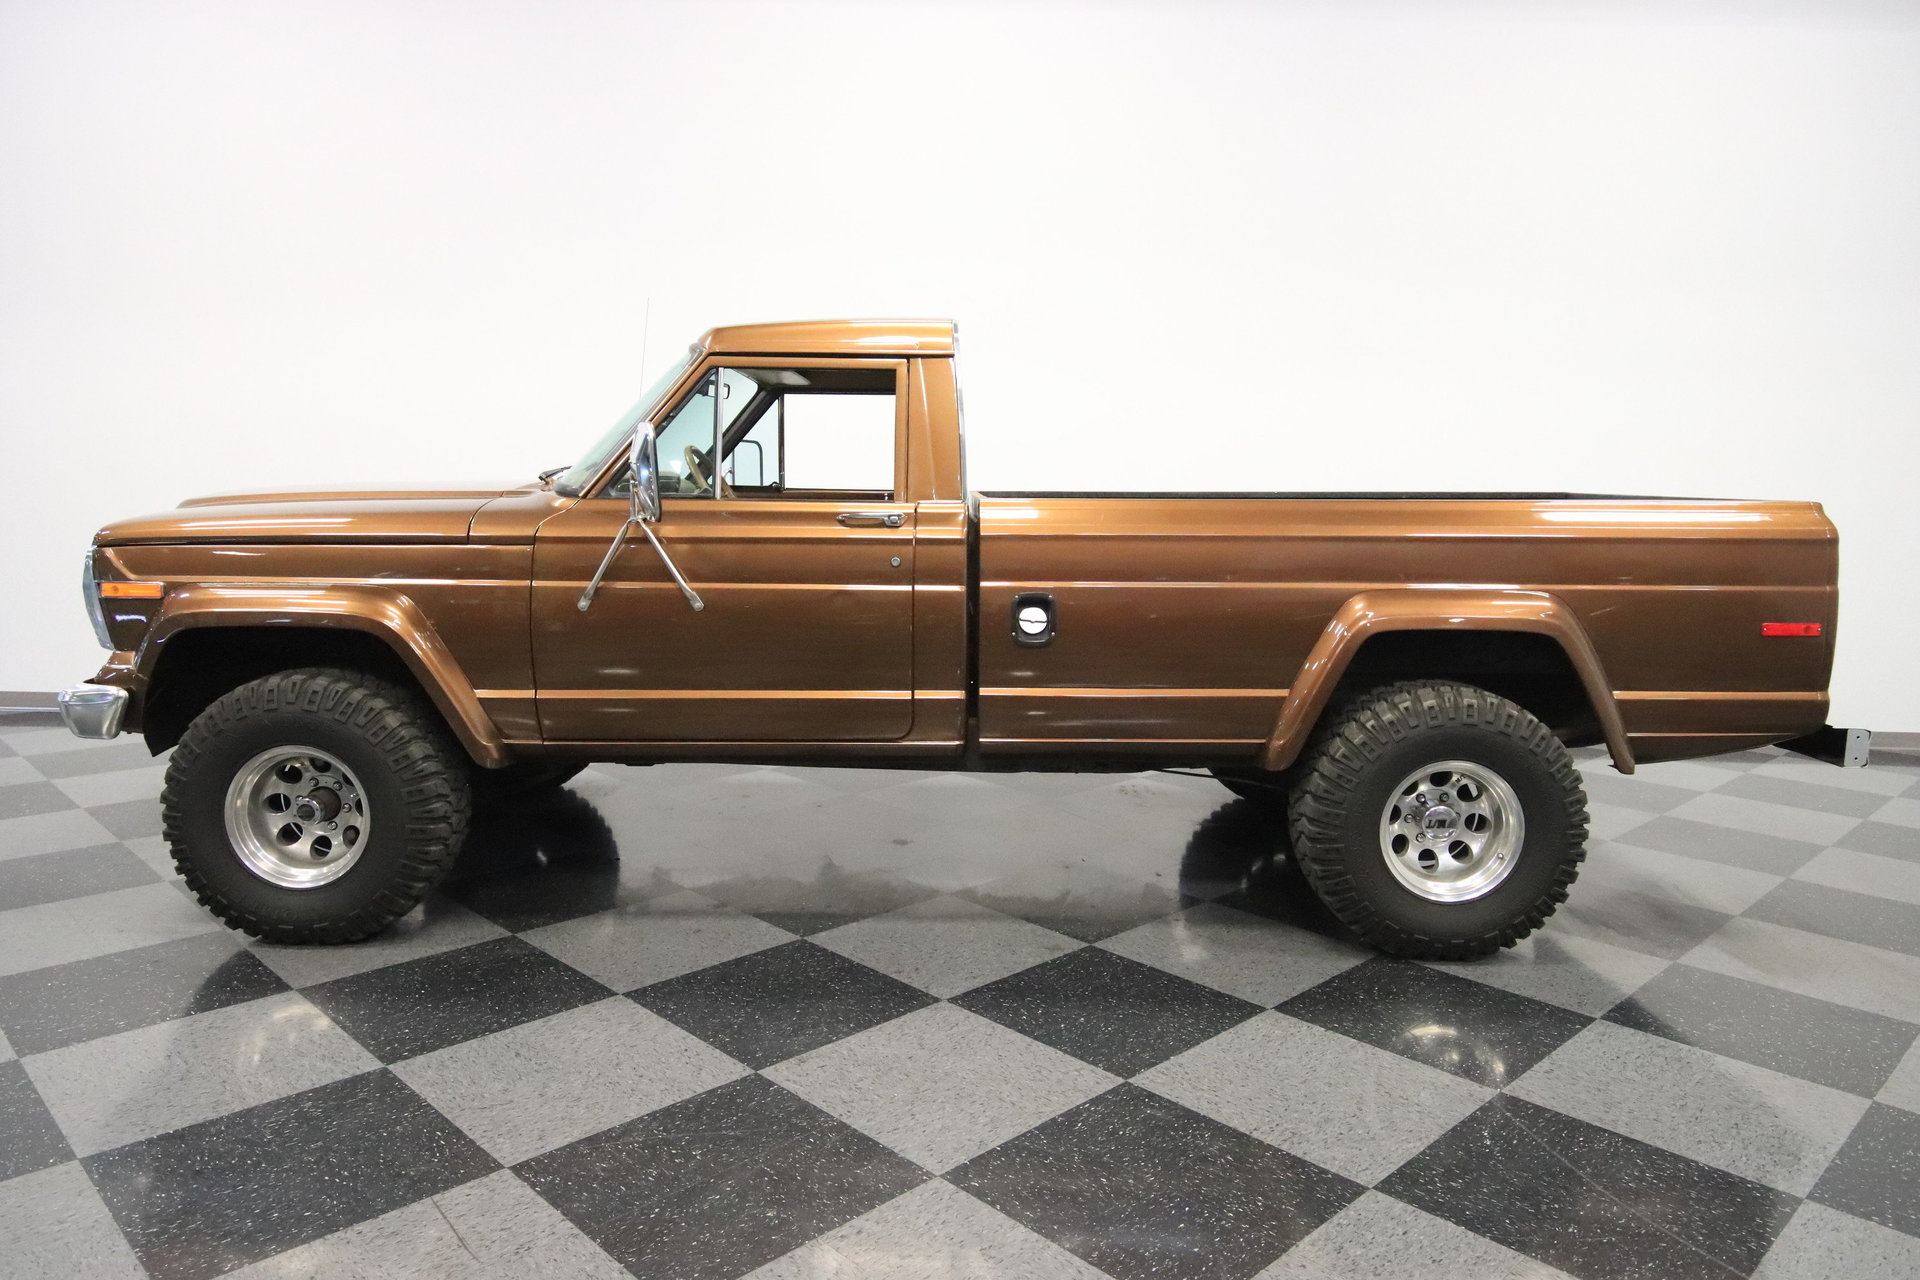 Phenomenal 1988 Jeep J10 4X4 For Sale 101762 Mcg Gmtry Best Dining Table And Chair Ideas Images Gmtryco